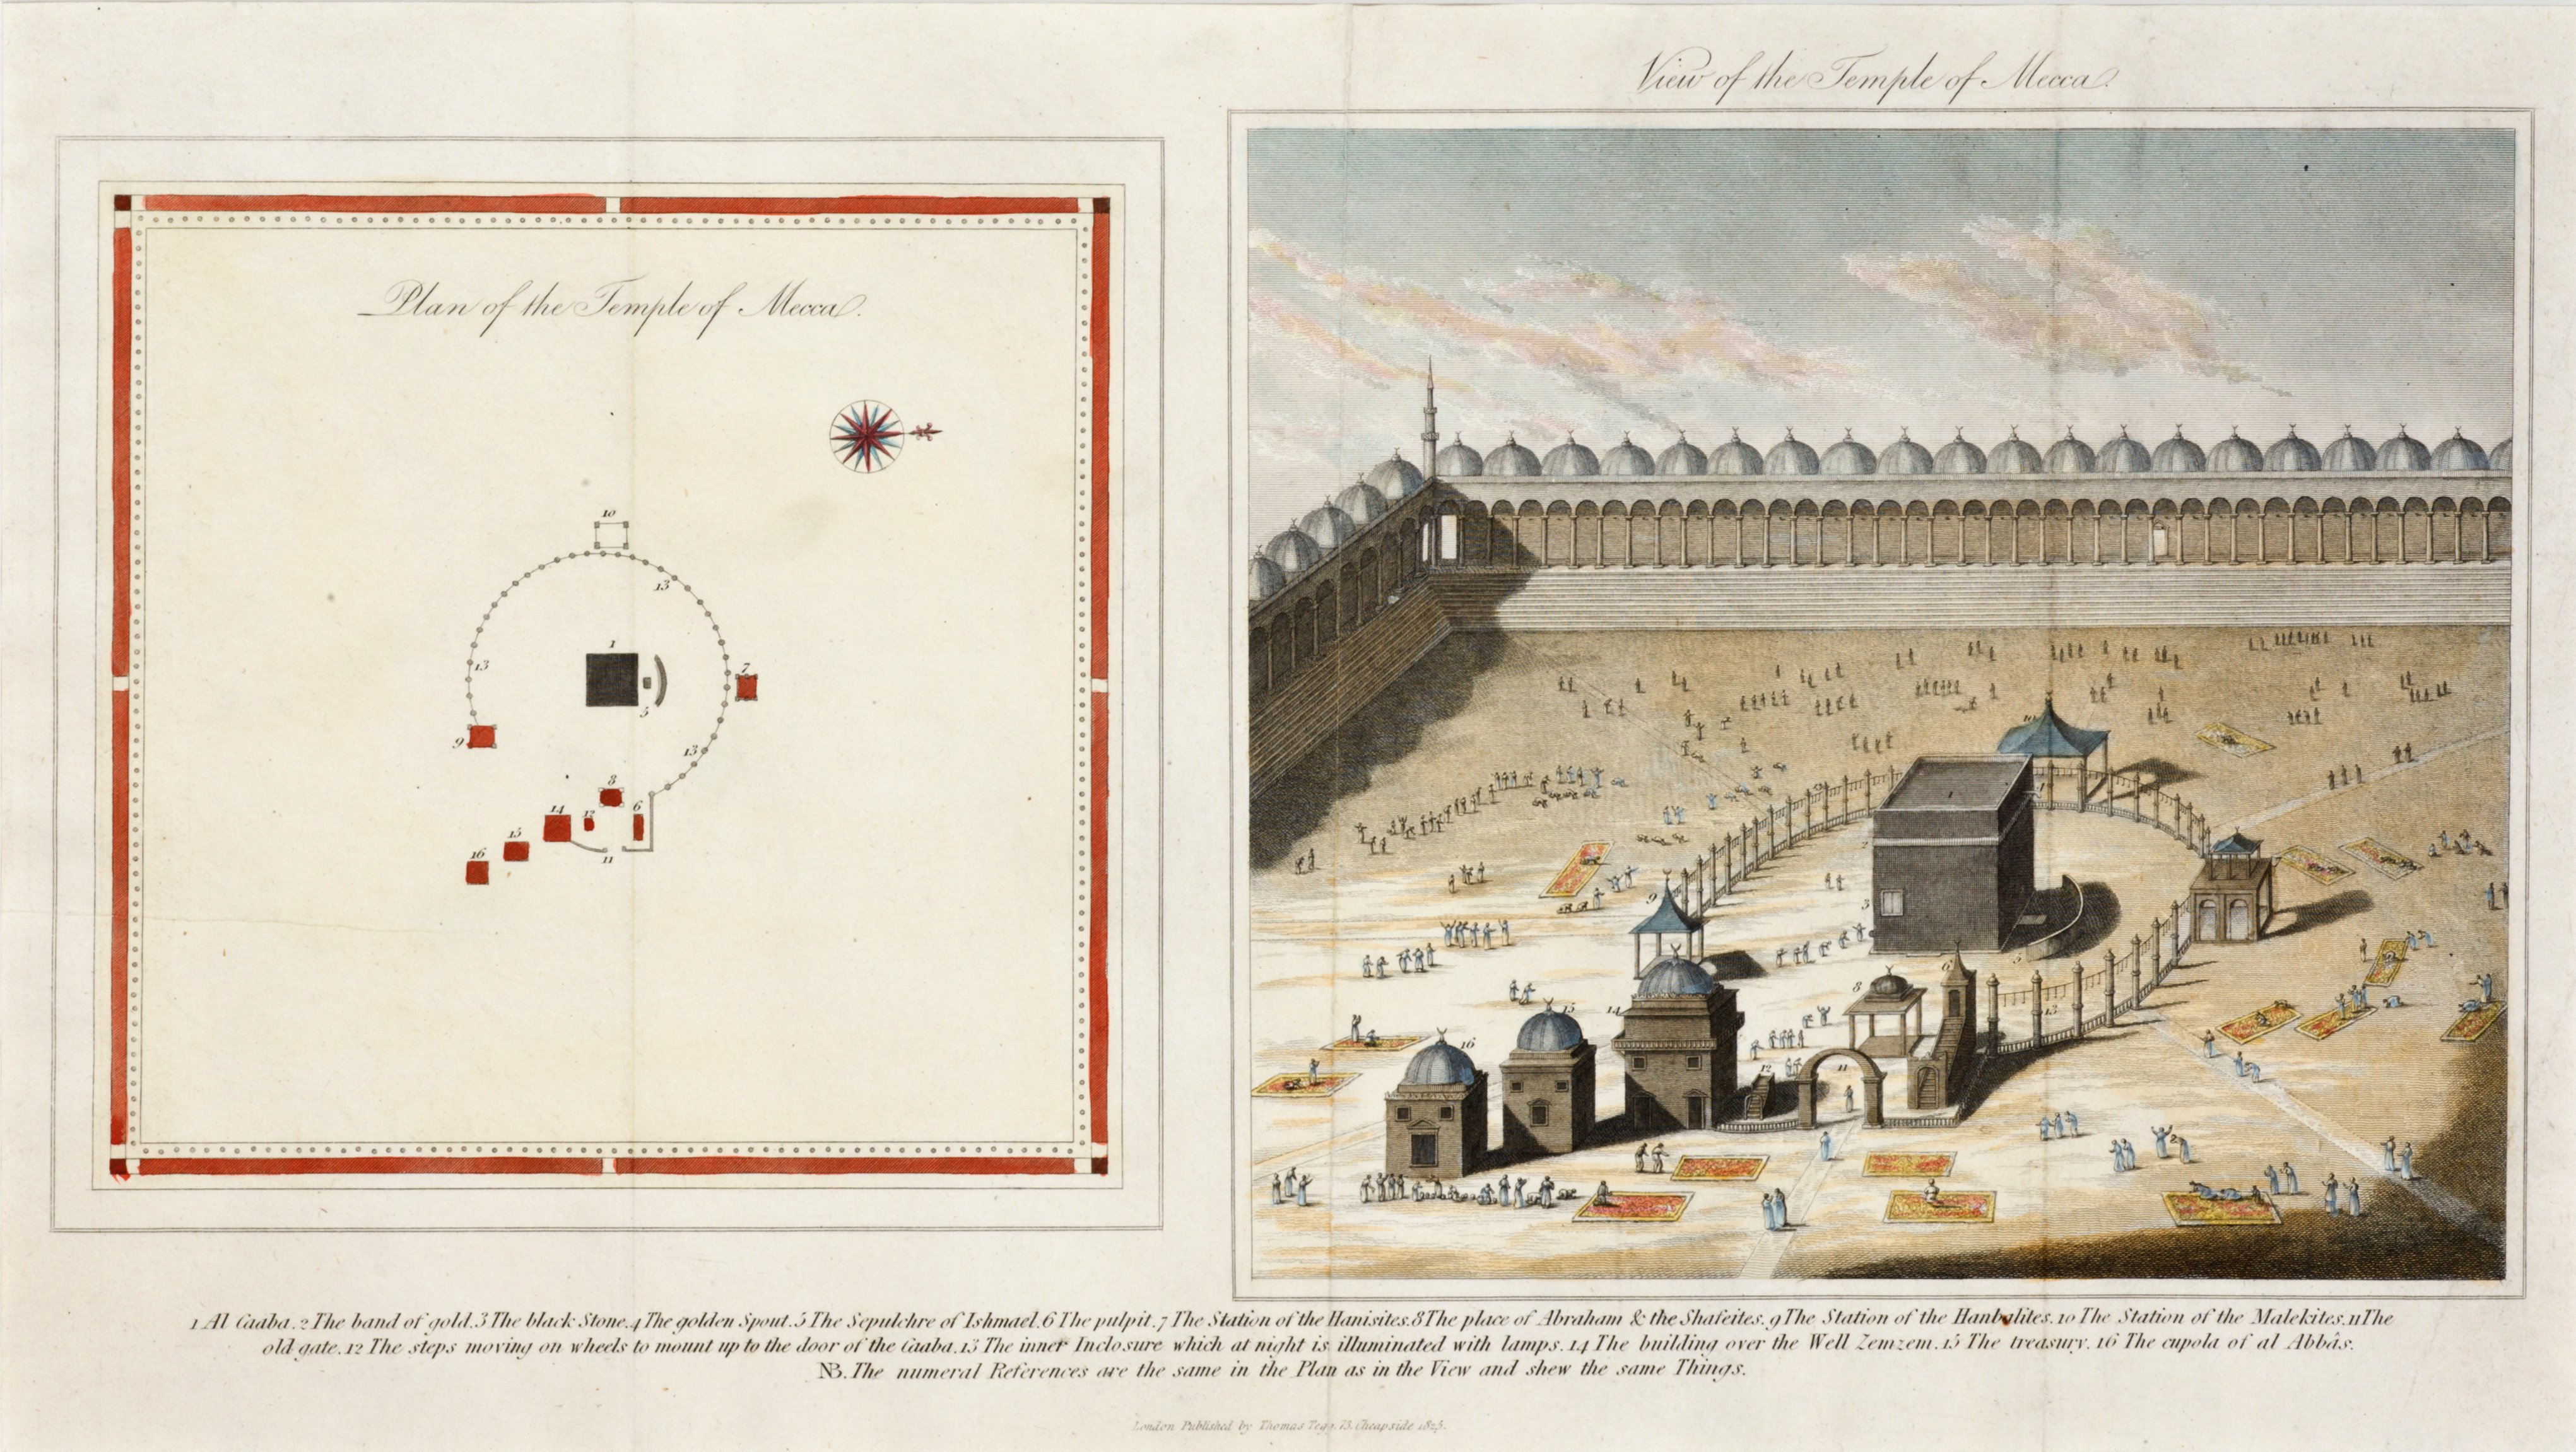 Plan and view of the Holy Sanctuary at Mecca published by Thomas Tegg,